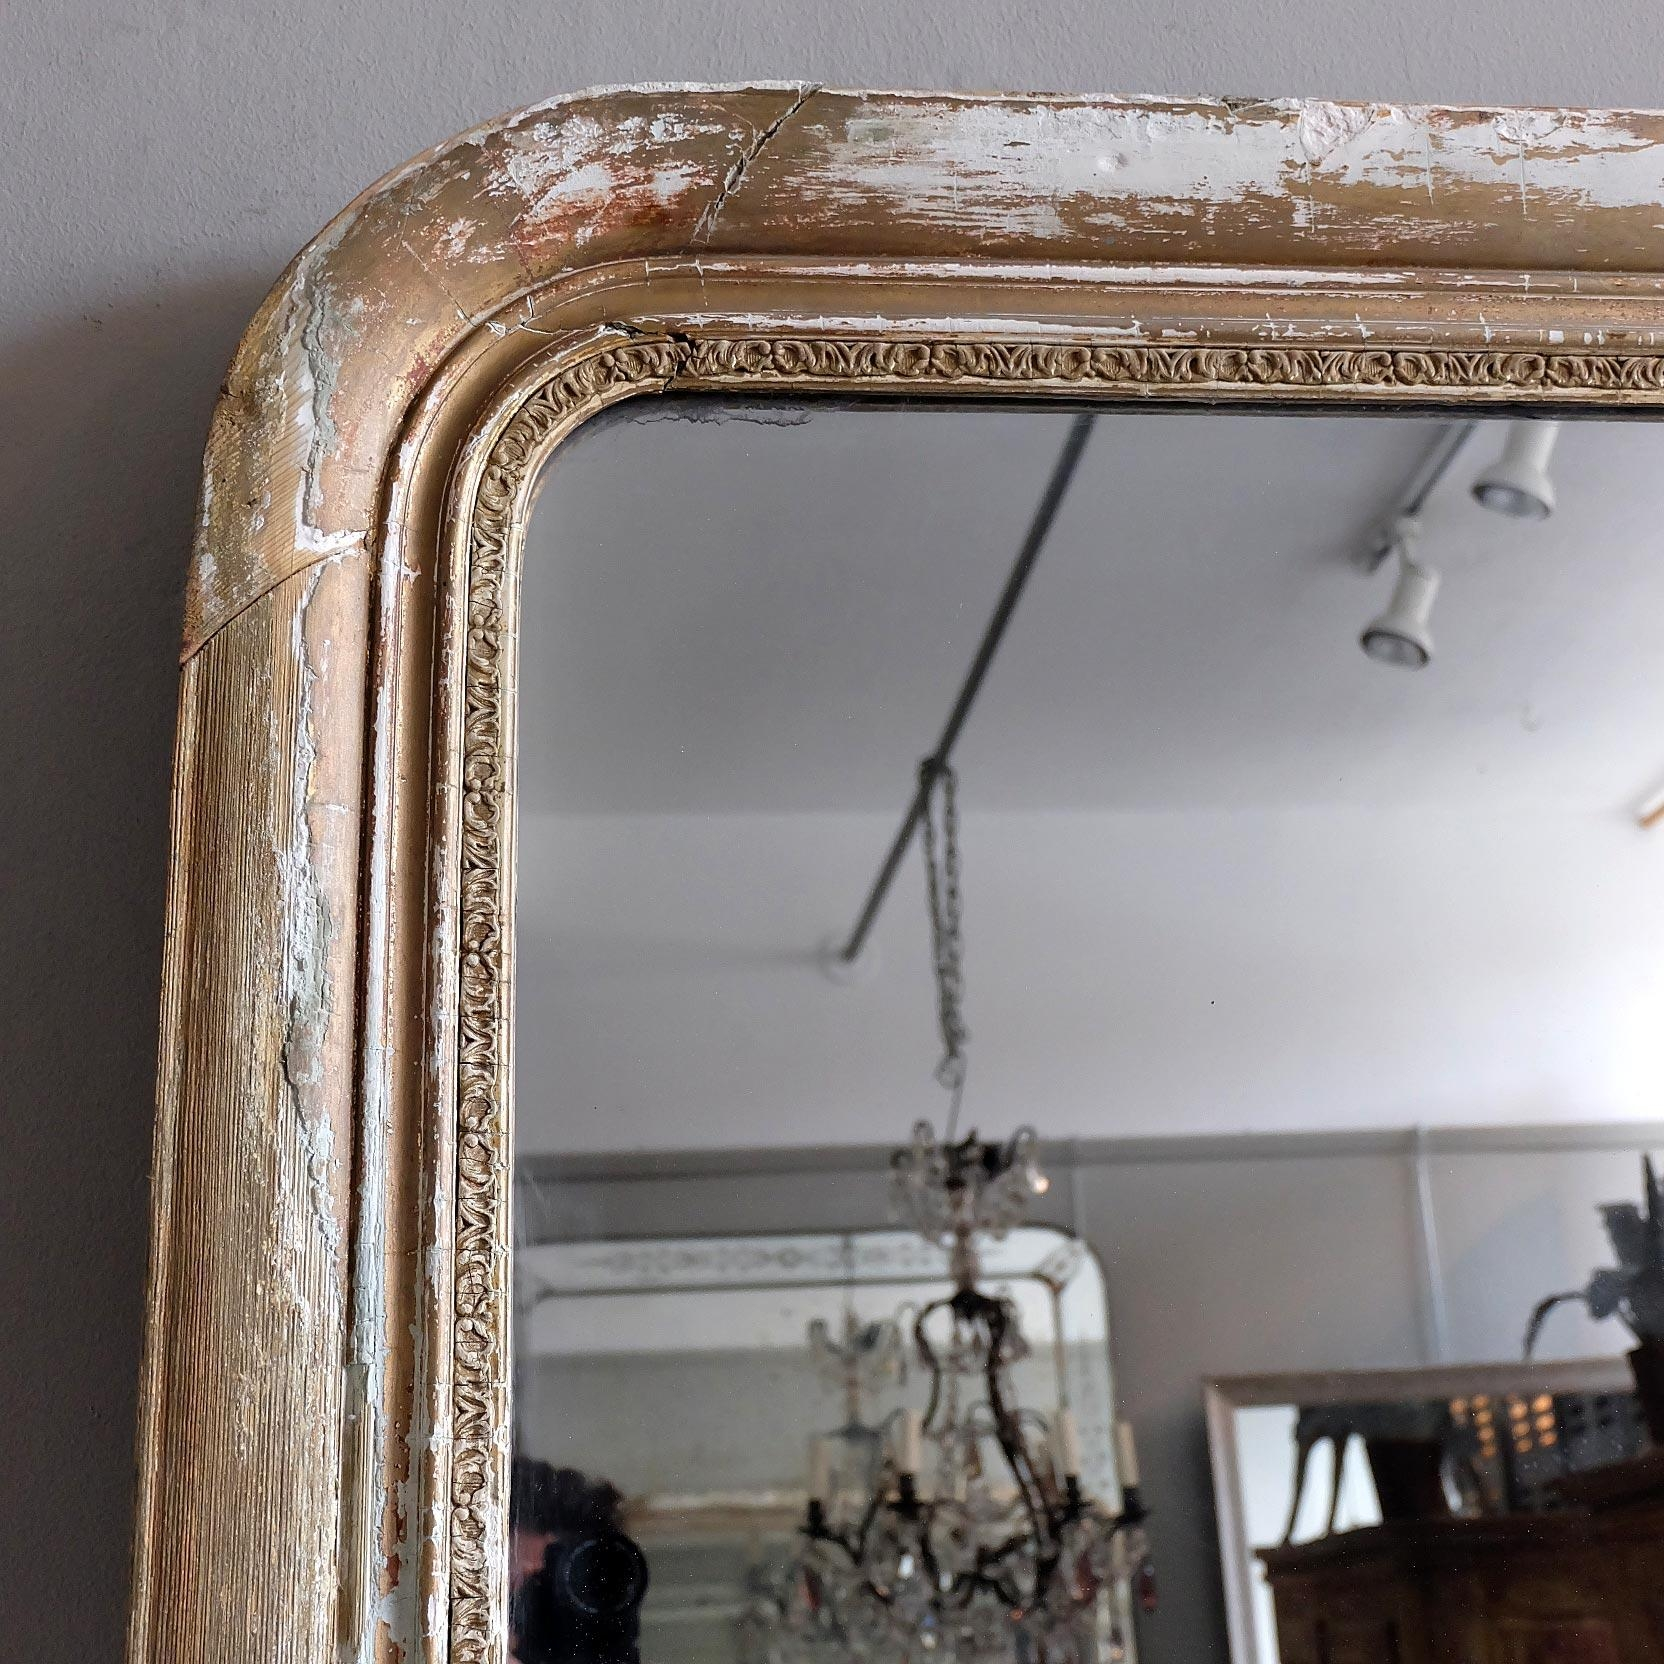 Massive Antique Mirror › Puckhaber Decorative Antiques With Massive Mirror (Image 16 of 20)